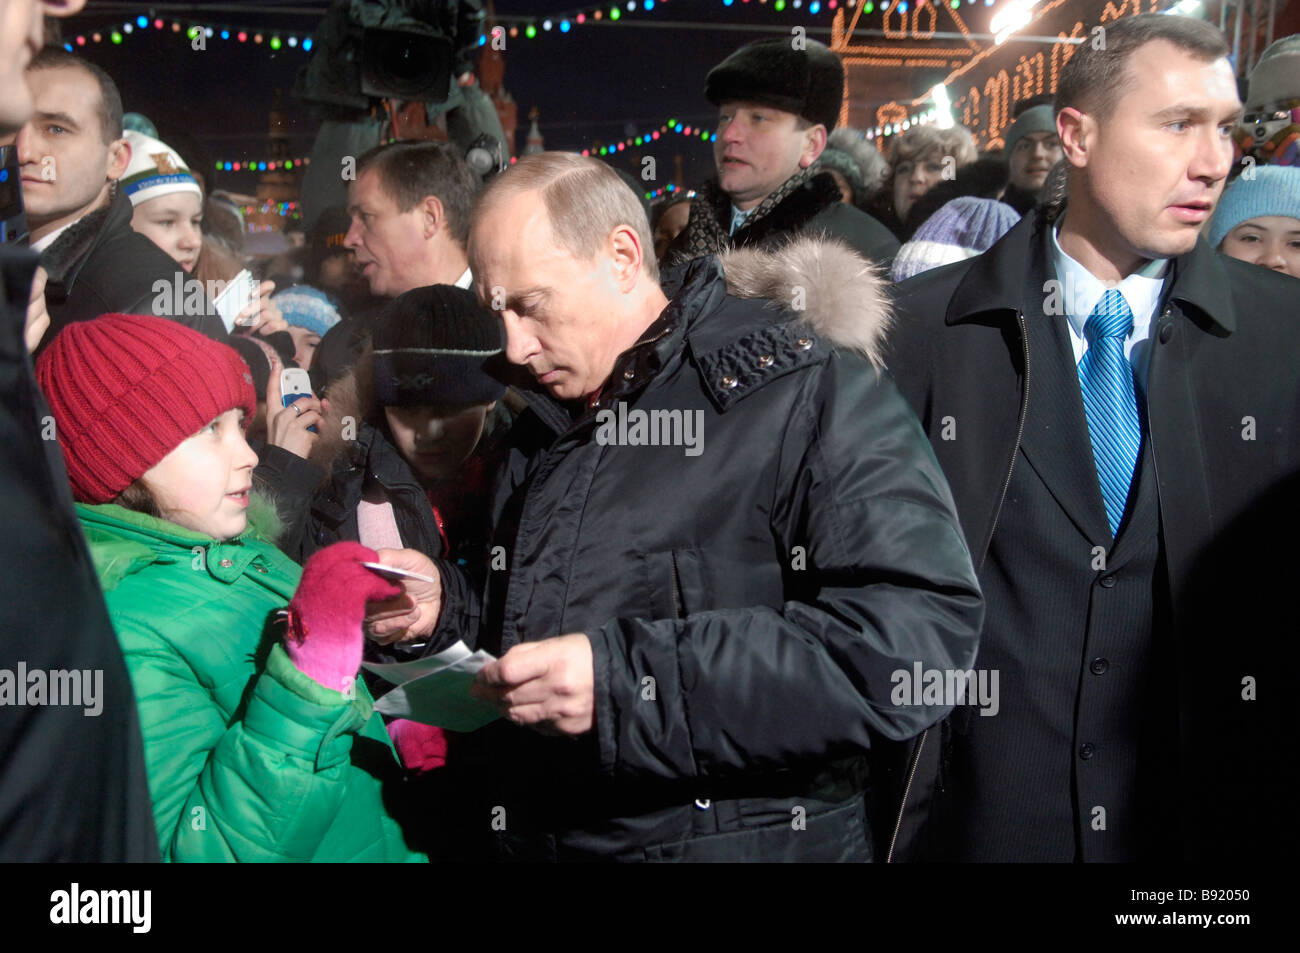 Russian President Vladimir Putin visits the Red Square skating rink next to the Kremlin - Stock Image